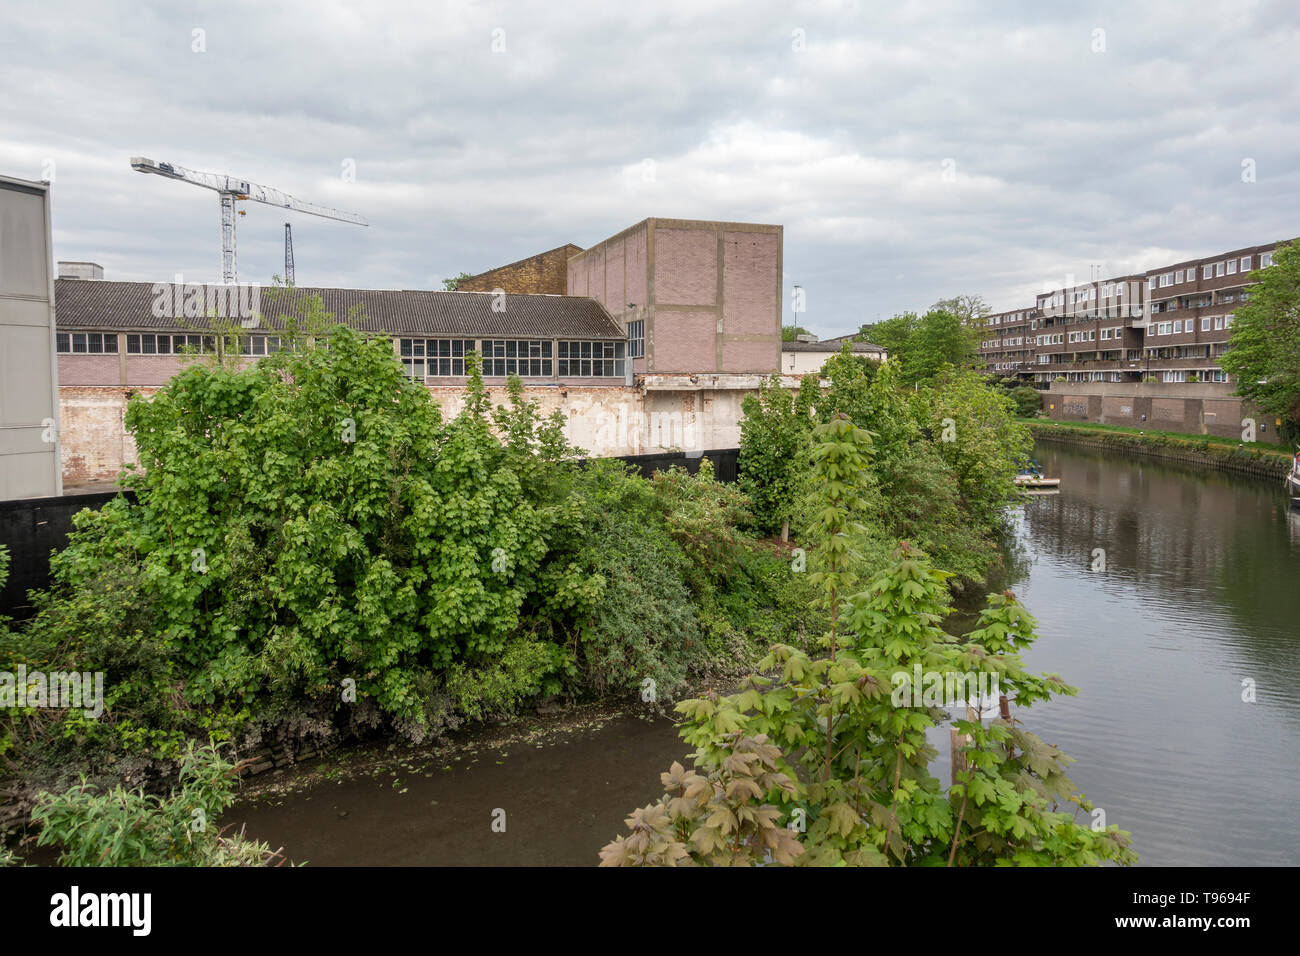 General view over the River Brent area that will be part of the Brentford High Street area prior to major redevelopment (Brentford Waterside). - Stock Image